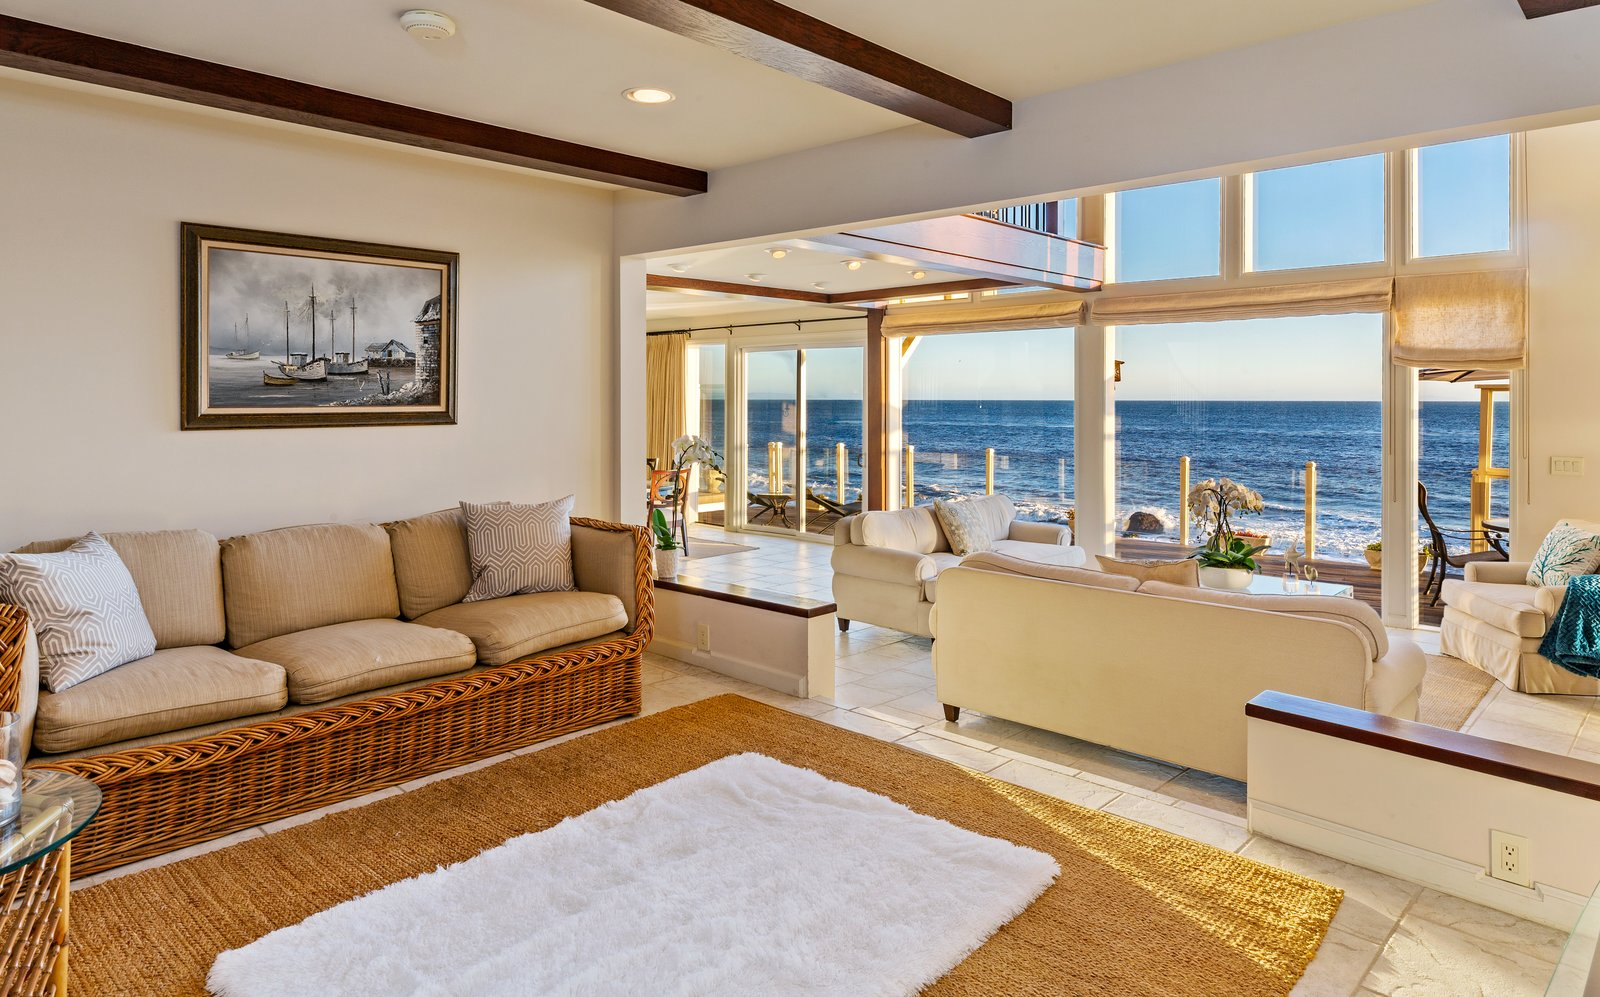 Living Room, Sofa, Chair, Rug Floor, Recessed Lighting, Limestone Floor, Coffee Tables, Ceiling Lighting, and End Tables An open floor plan provides continuous living spaces with uninterrupted ocean views.  Photo 5 of 12 in 'Brady Bunch' Actor Barry Williams Lists His Malibu Home For $6.4M